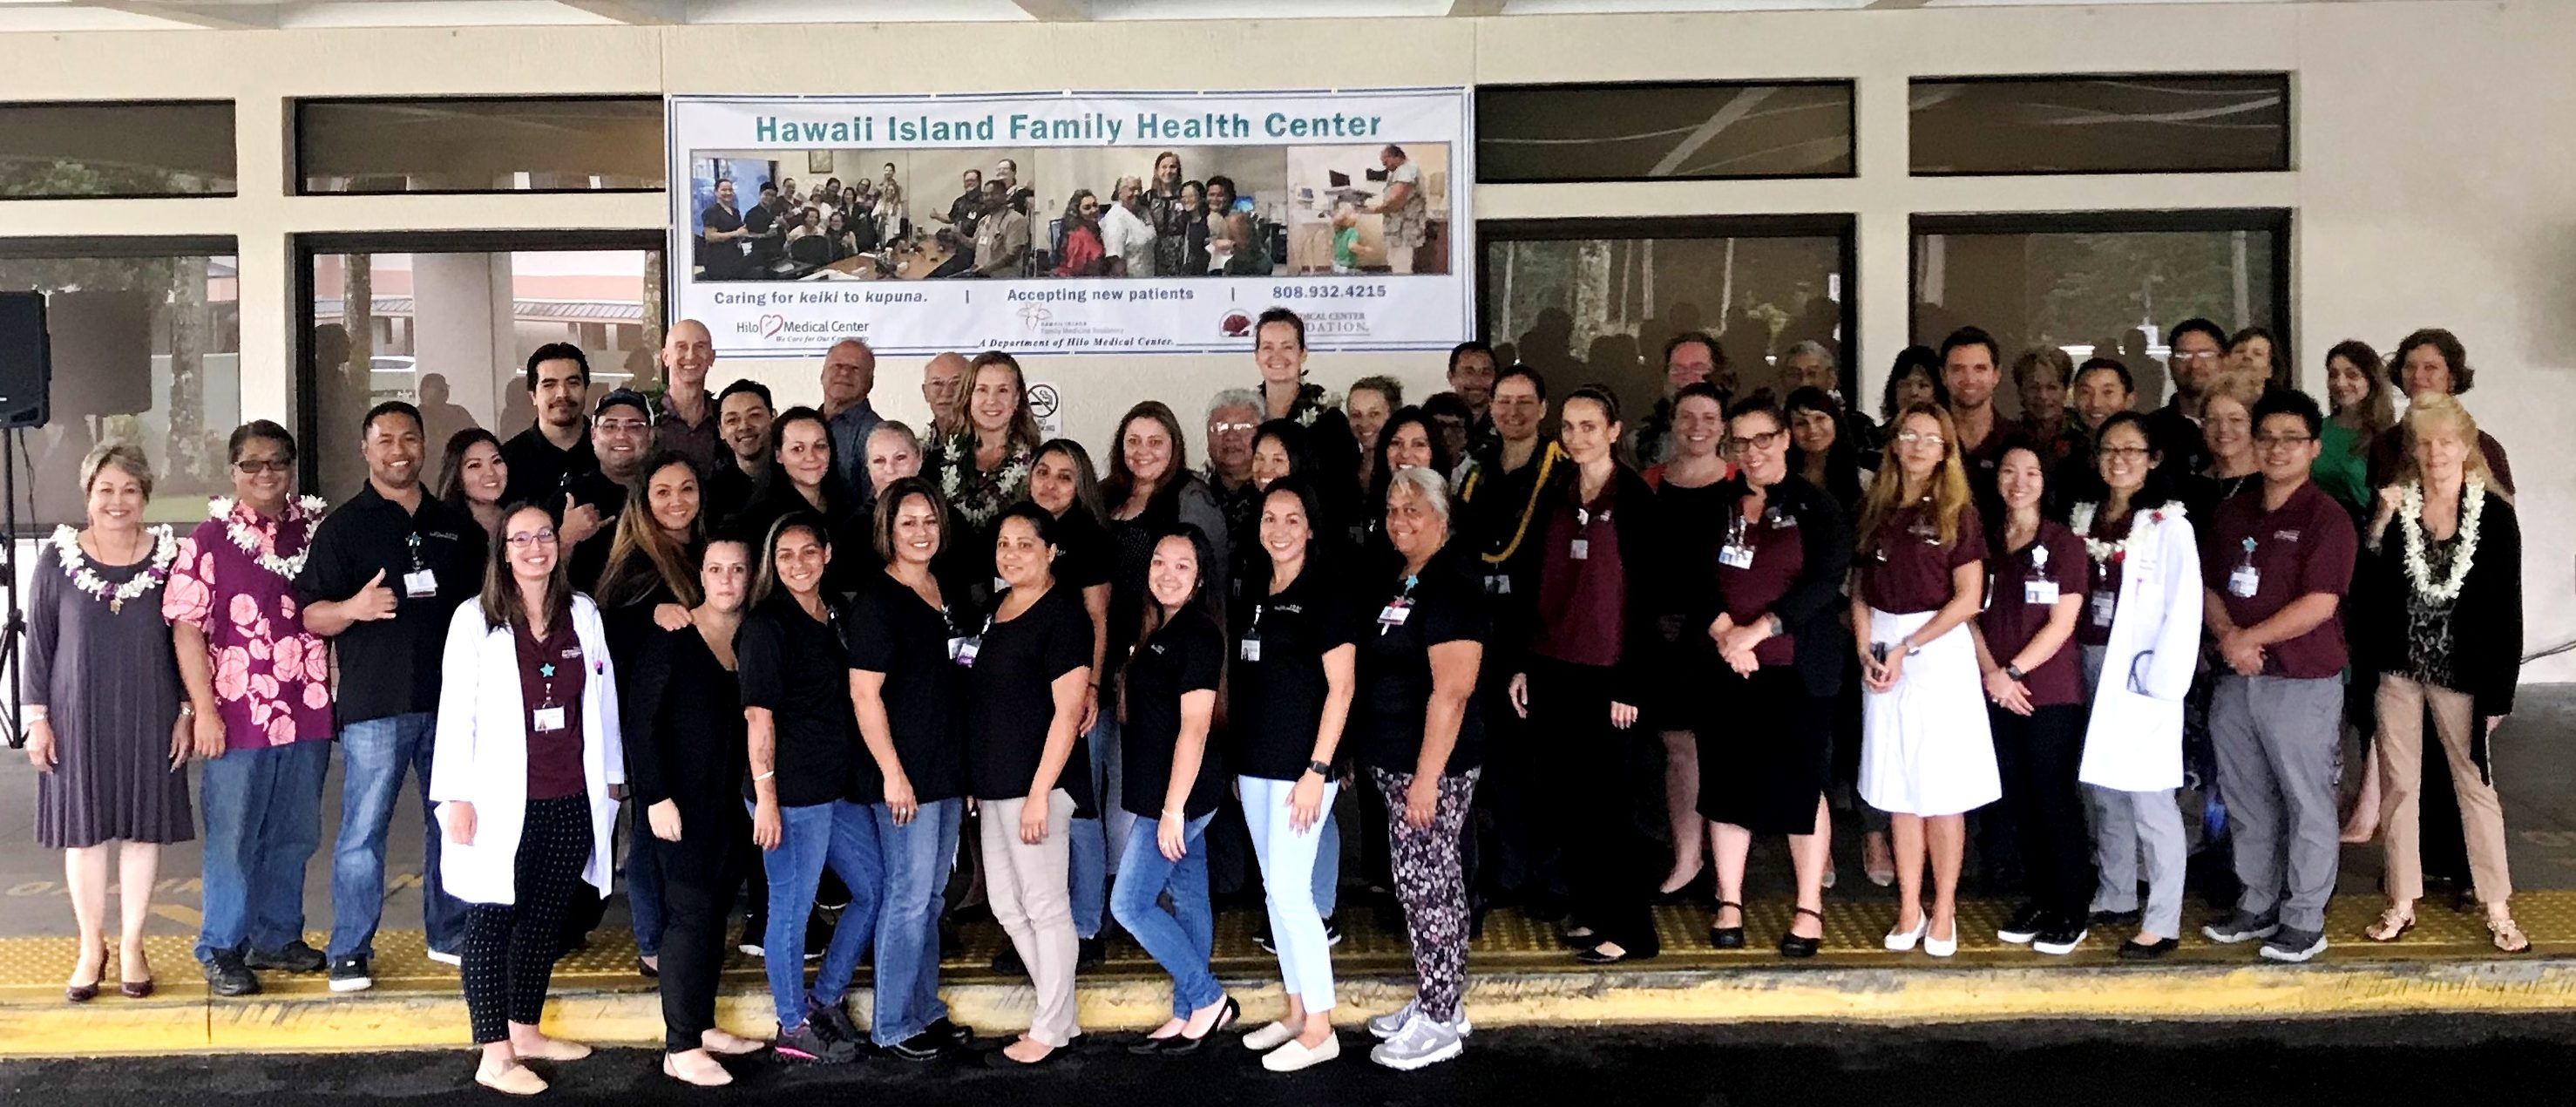 Hawaii Island Family Health Center Go Group picture